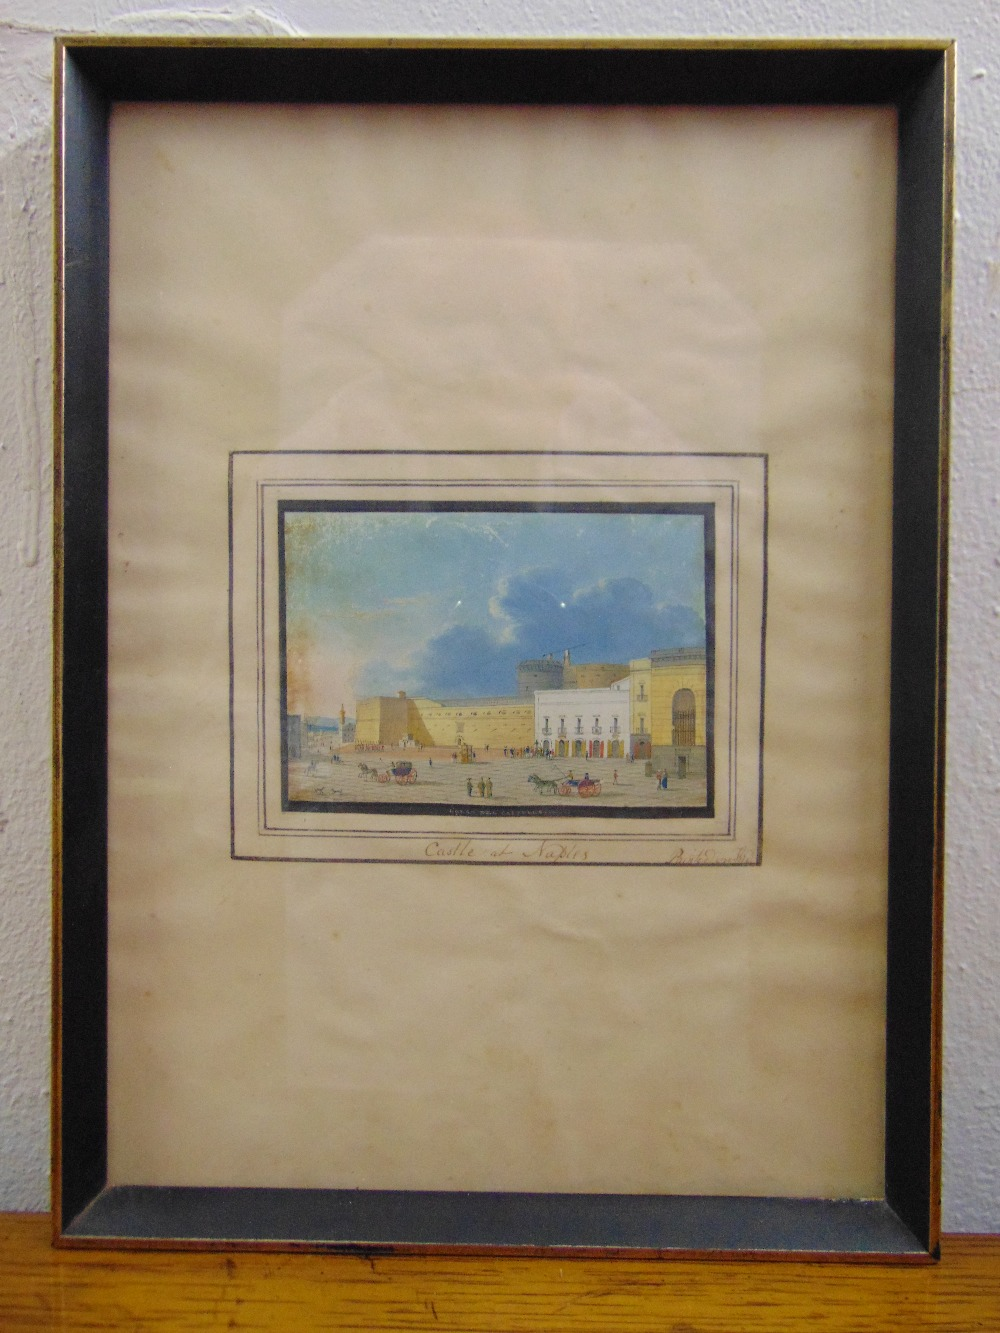 Lot 77 - A framed and glazed 19th century miniature watercolour of The Castle at Naples, 7 x 10cm